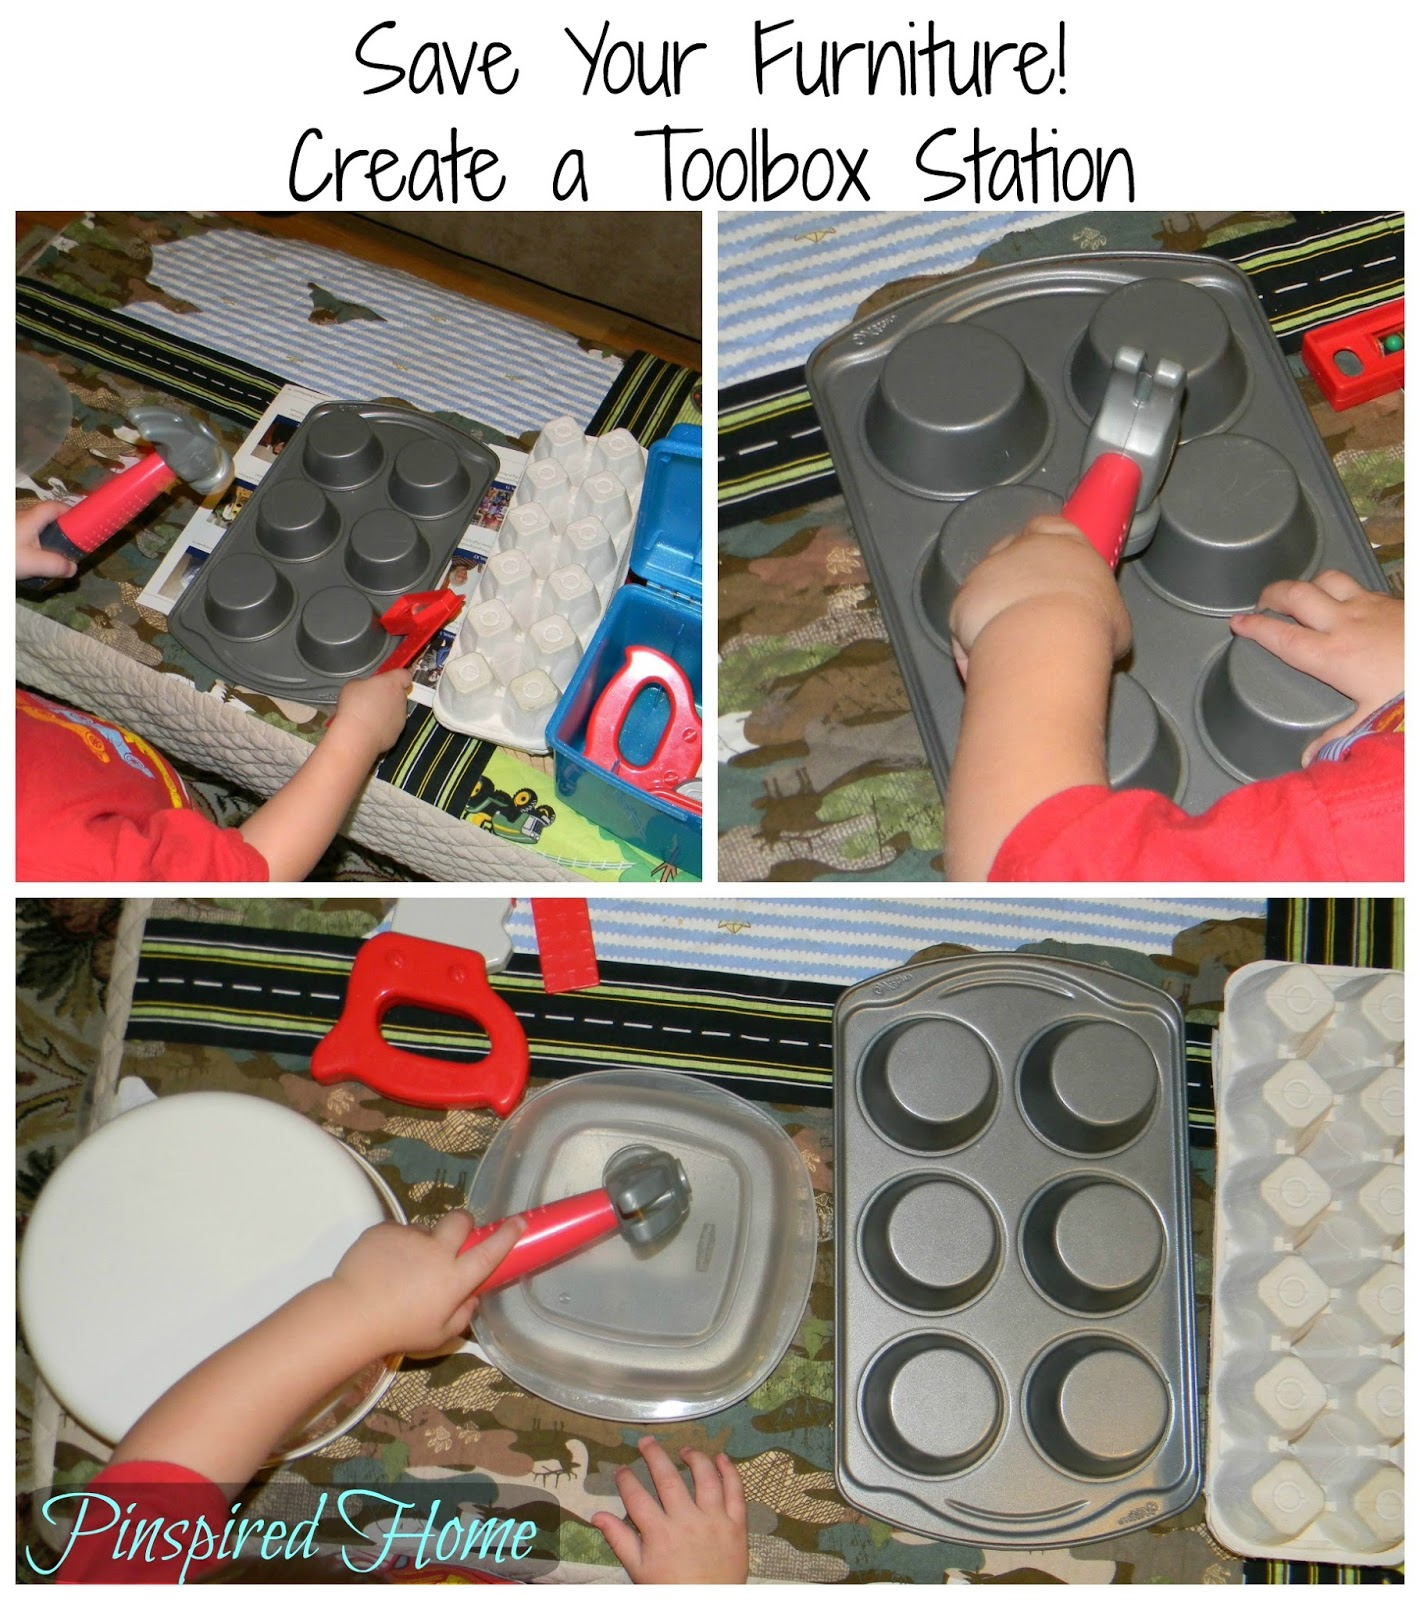 http://pinspiredhome.blogspot.com/2014/04/create-toolbox-station-tips-tricks.html